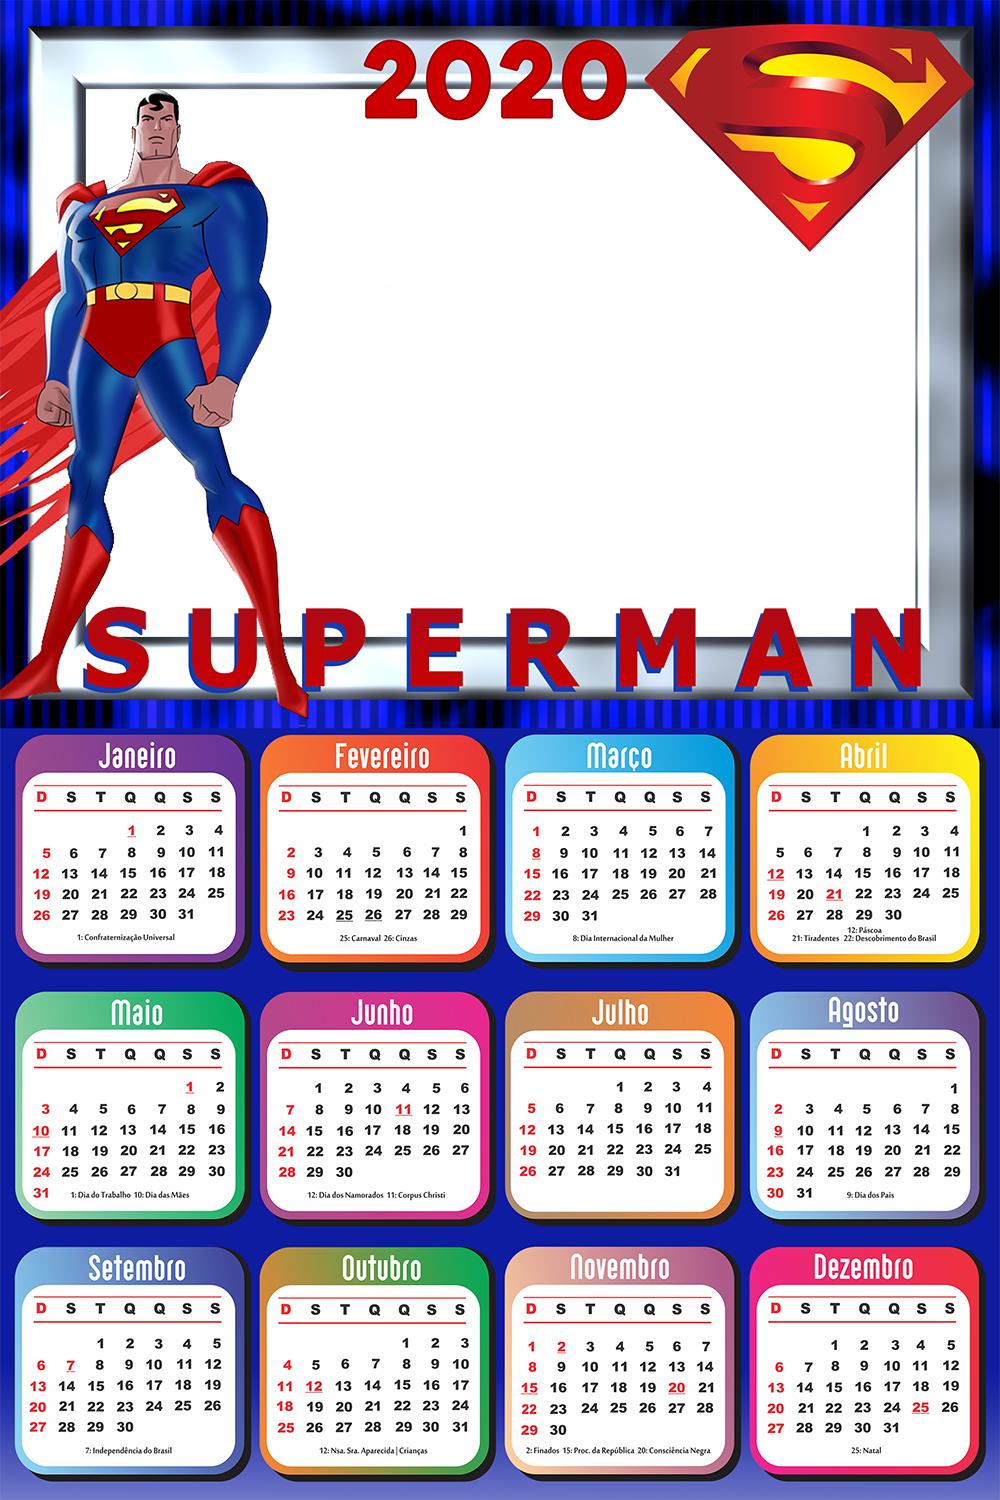 Calendario 2020 Imprimir Gratis Superman Imagem Legal